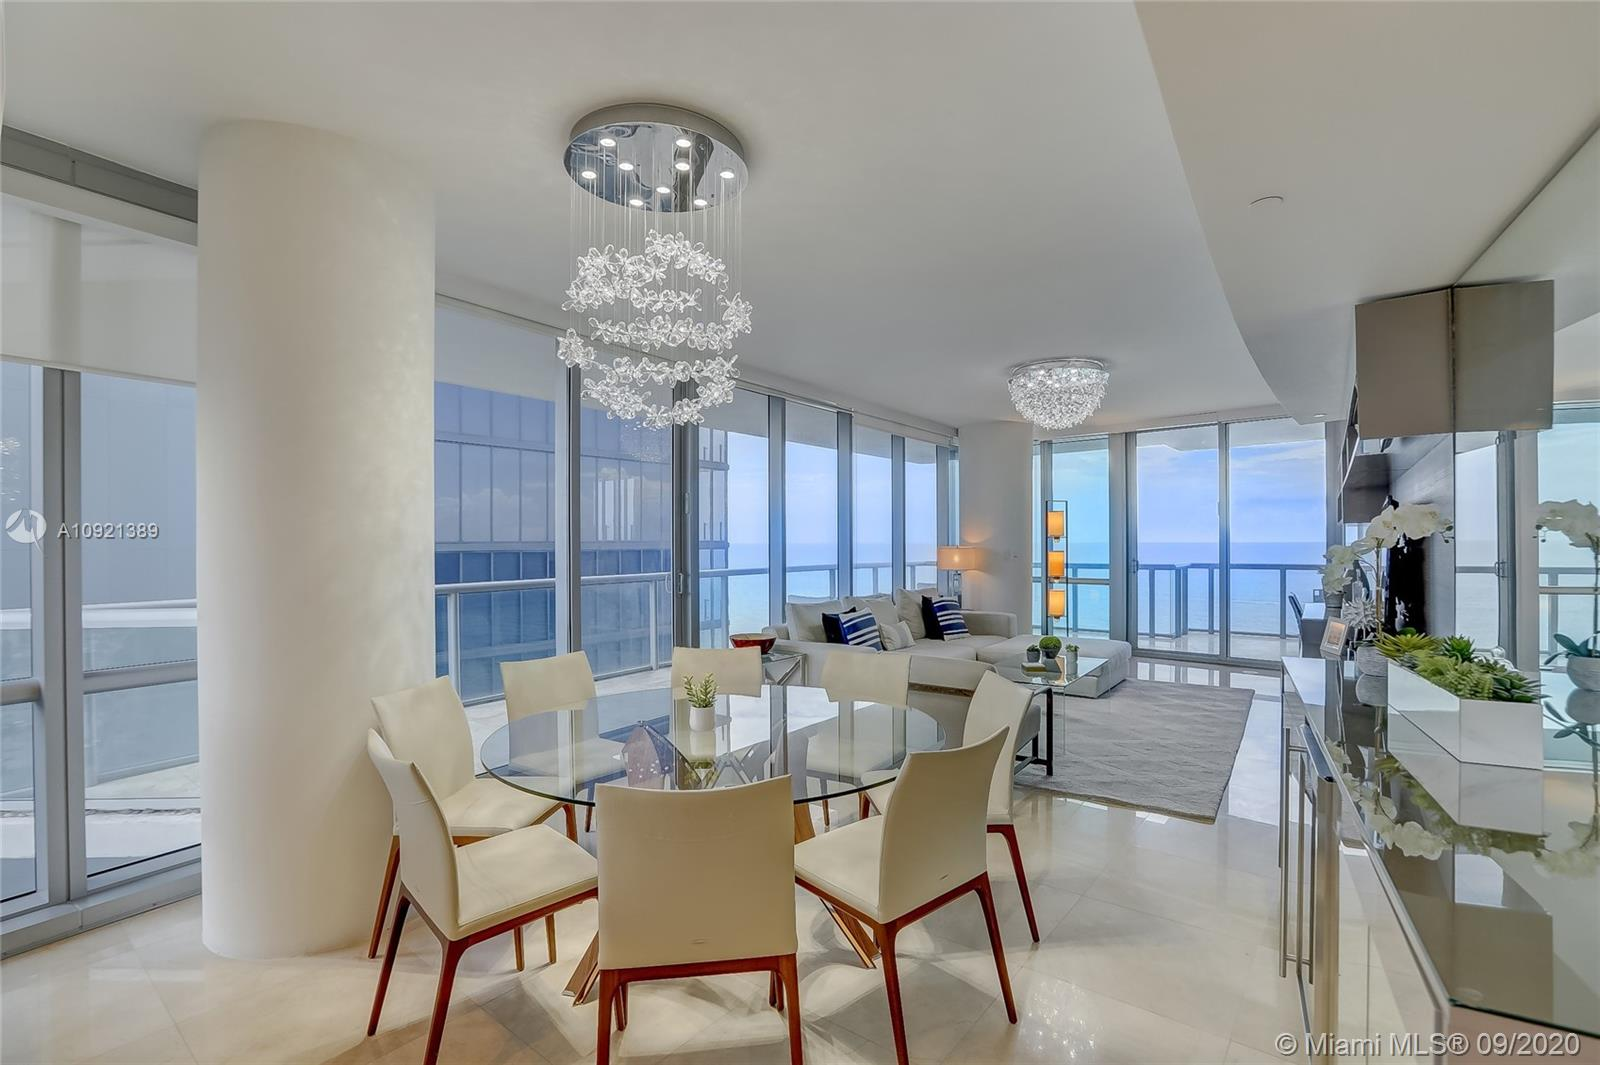 17121  Collins Ave #1608 For Sale A10921389, FL